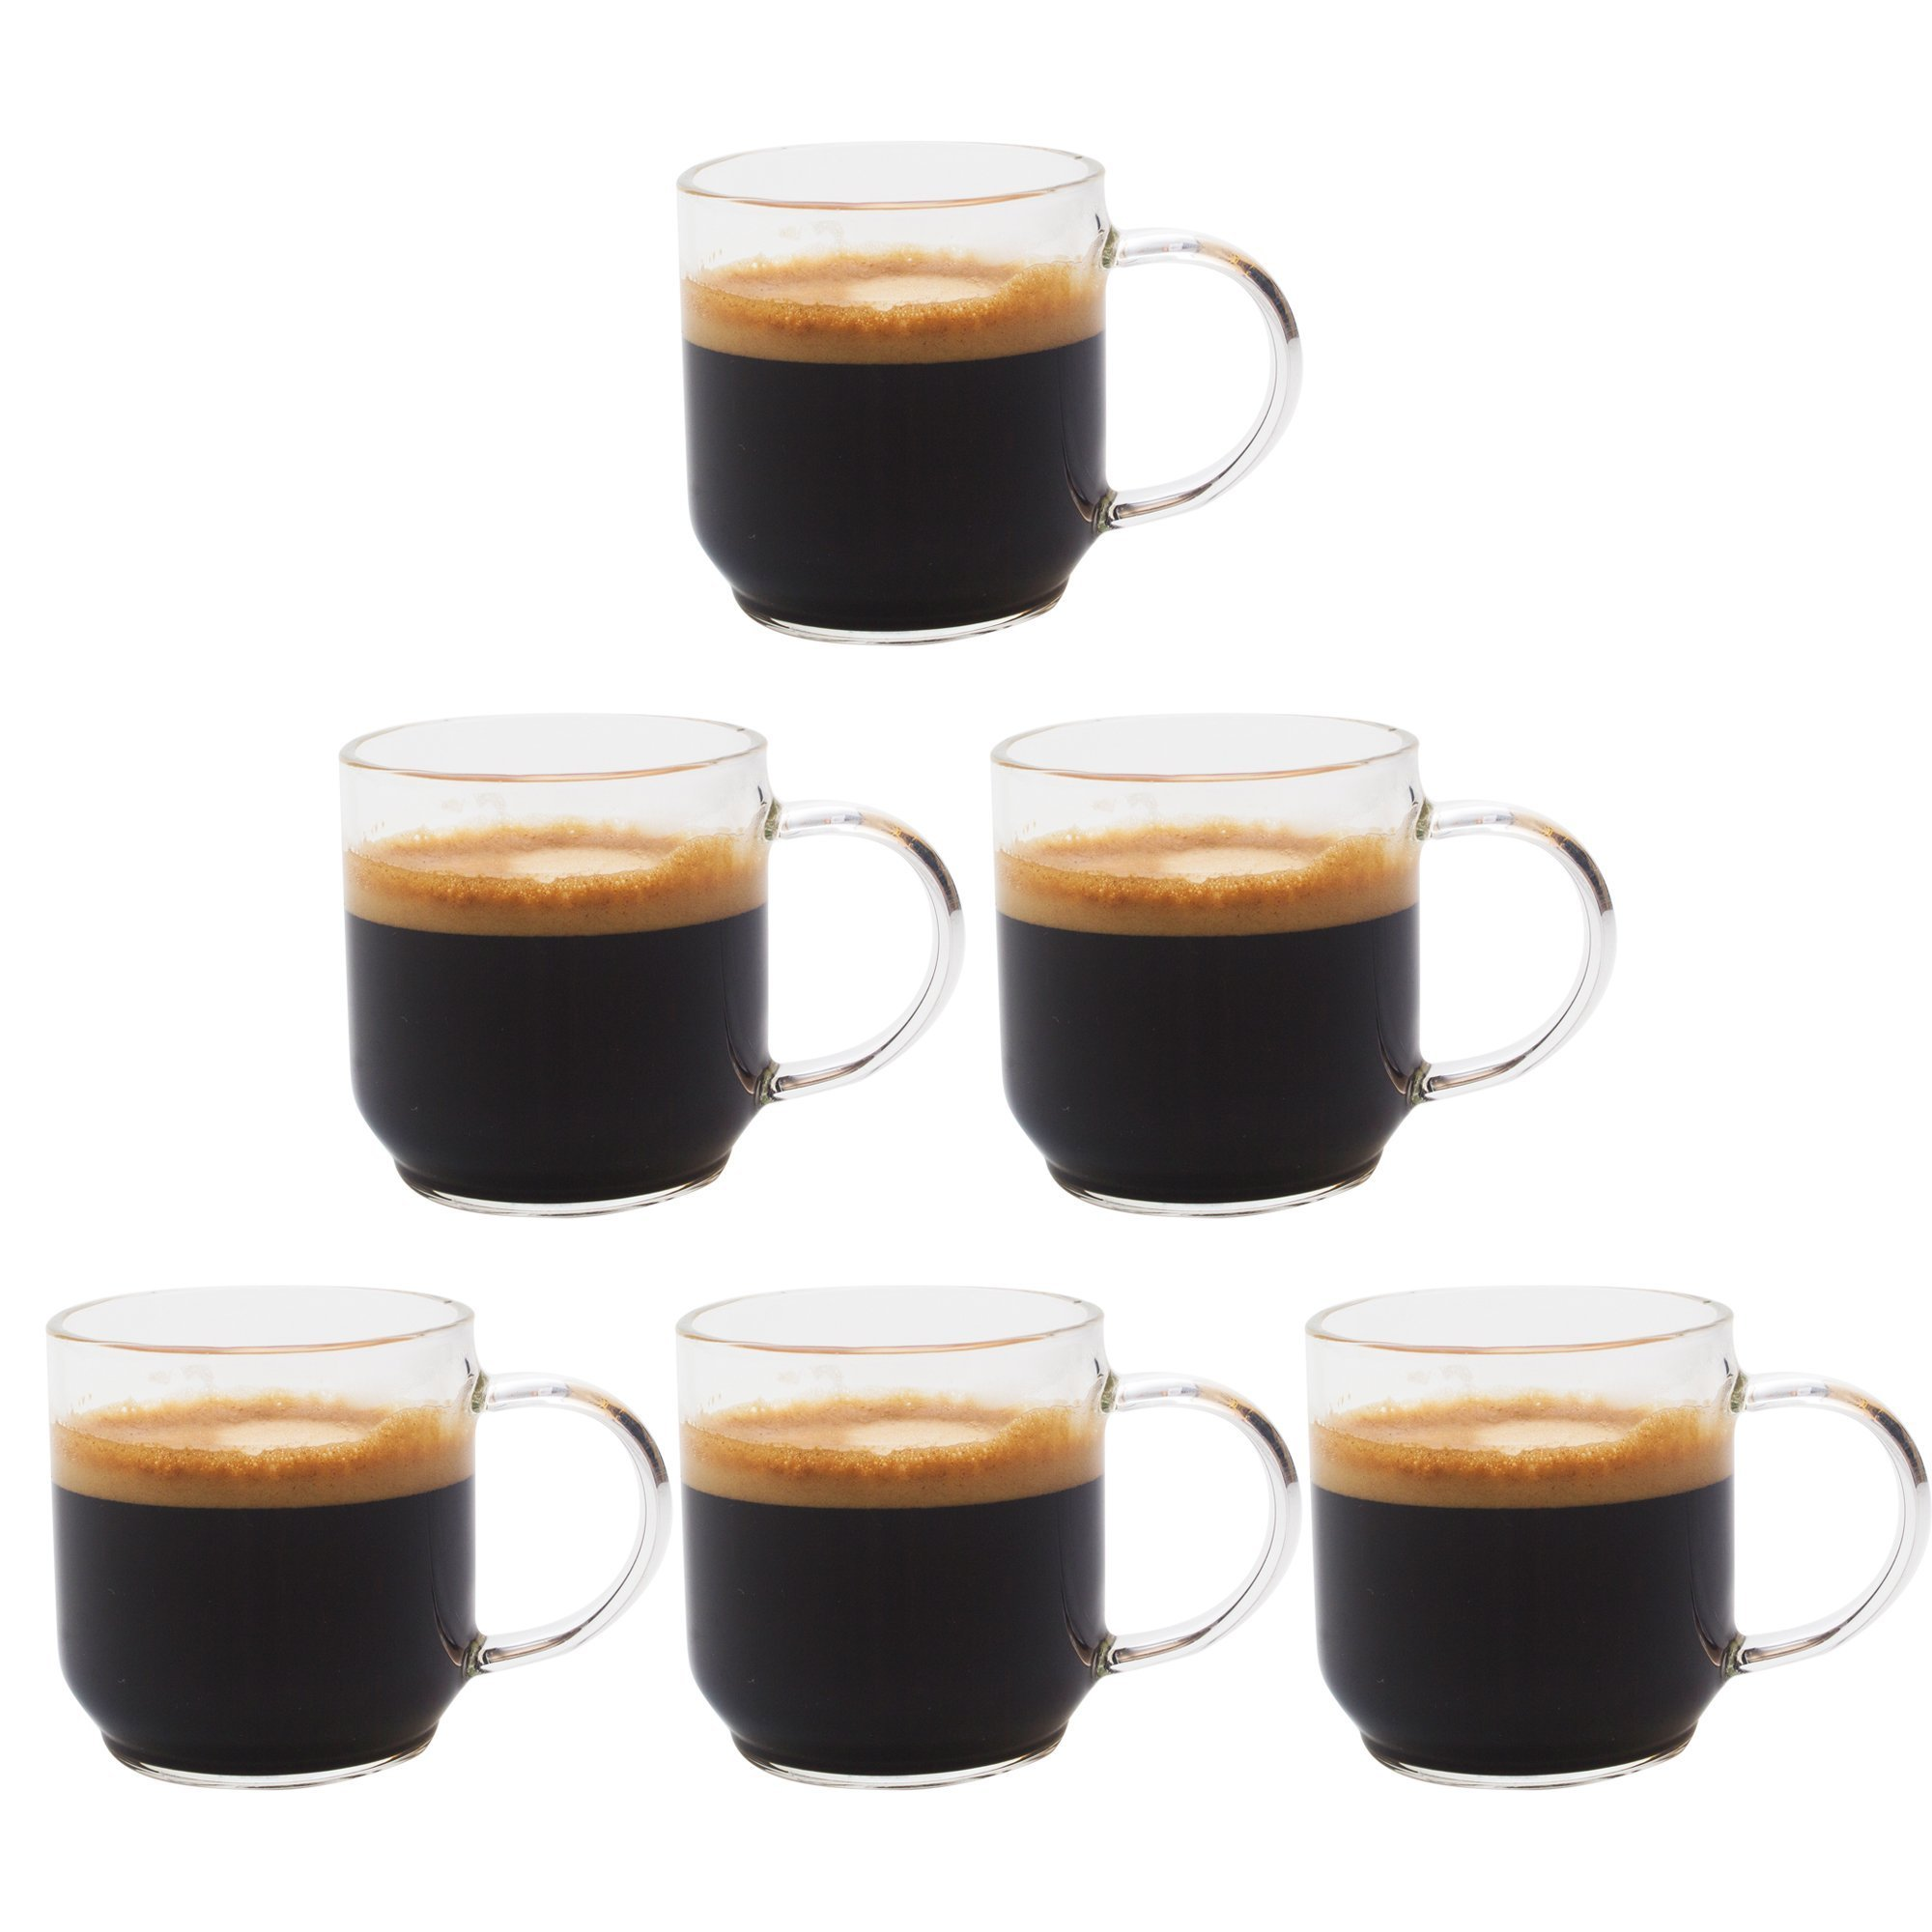 Zenco 4 oz (125ml) Coffee Glass Cups with Large Handle (Set of 6) - Perfect size for Nespresso Lungo, Single/Double Espresso, Juice or Sake